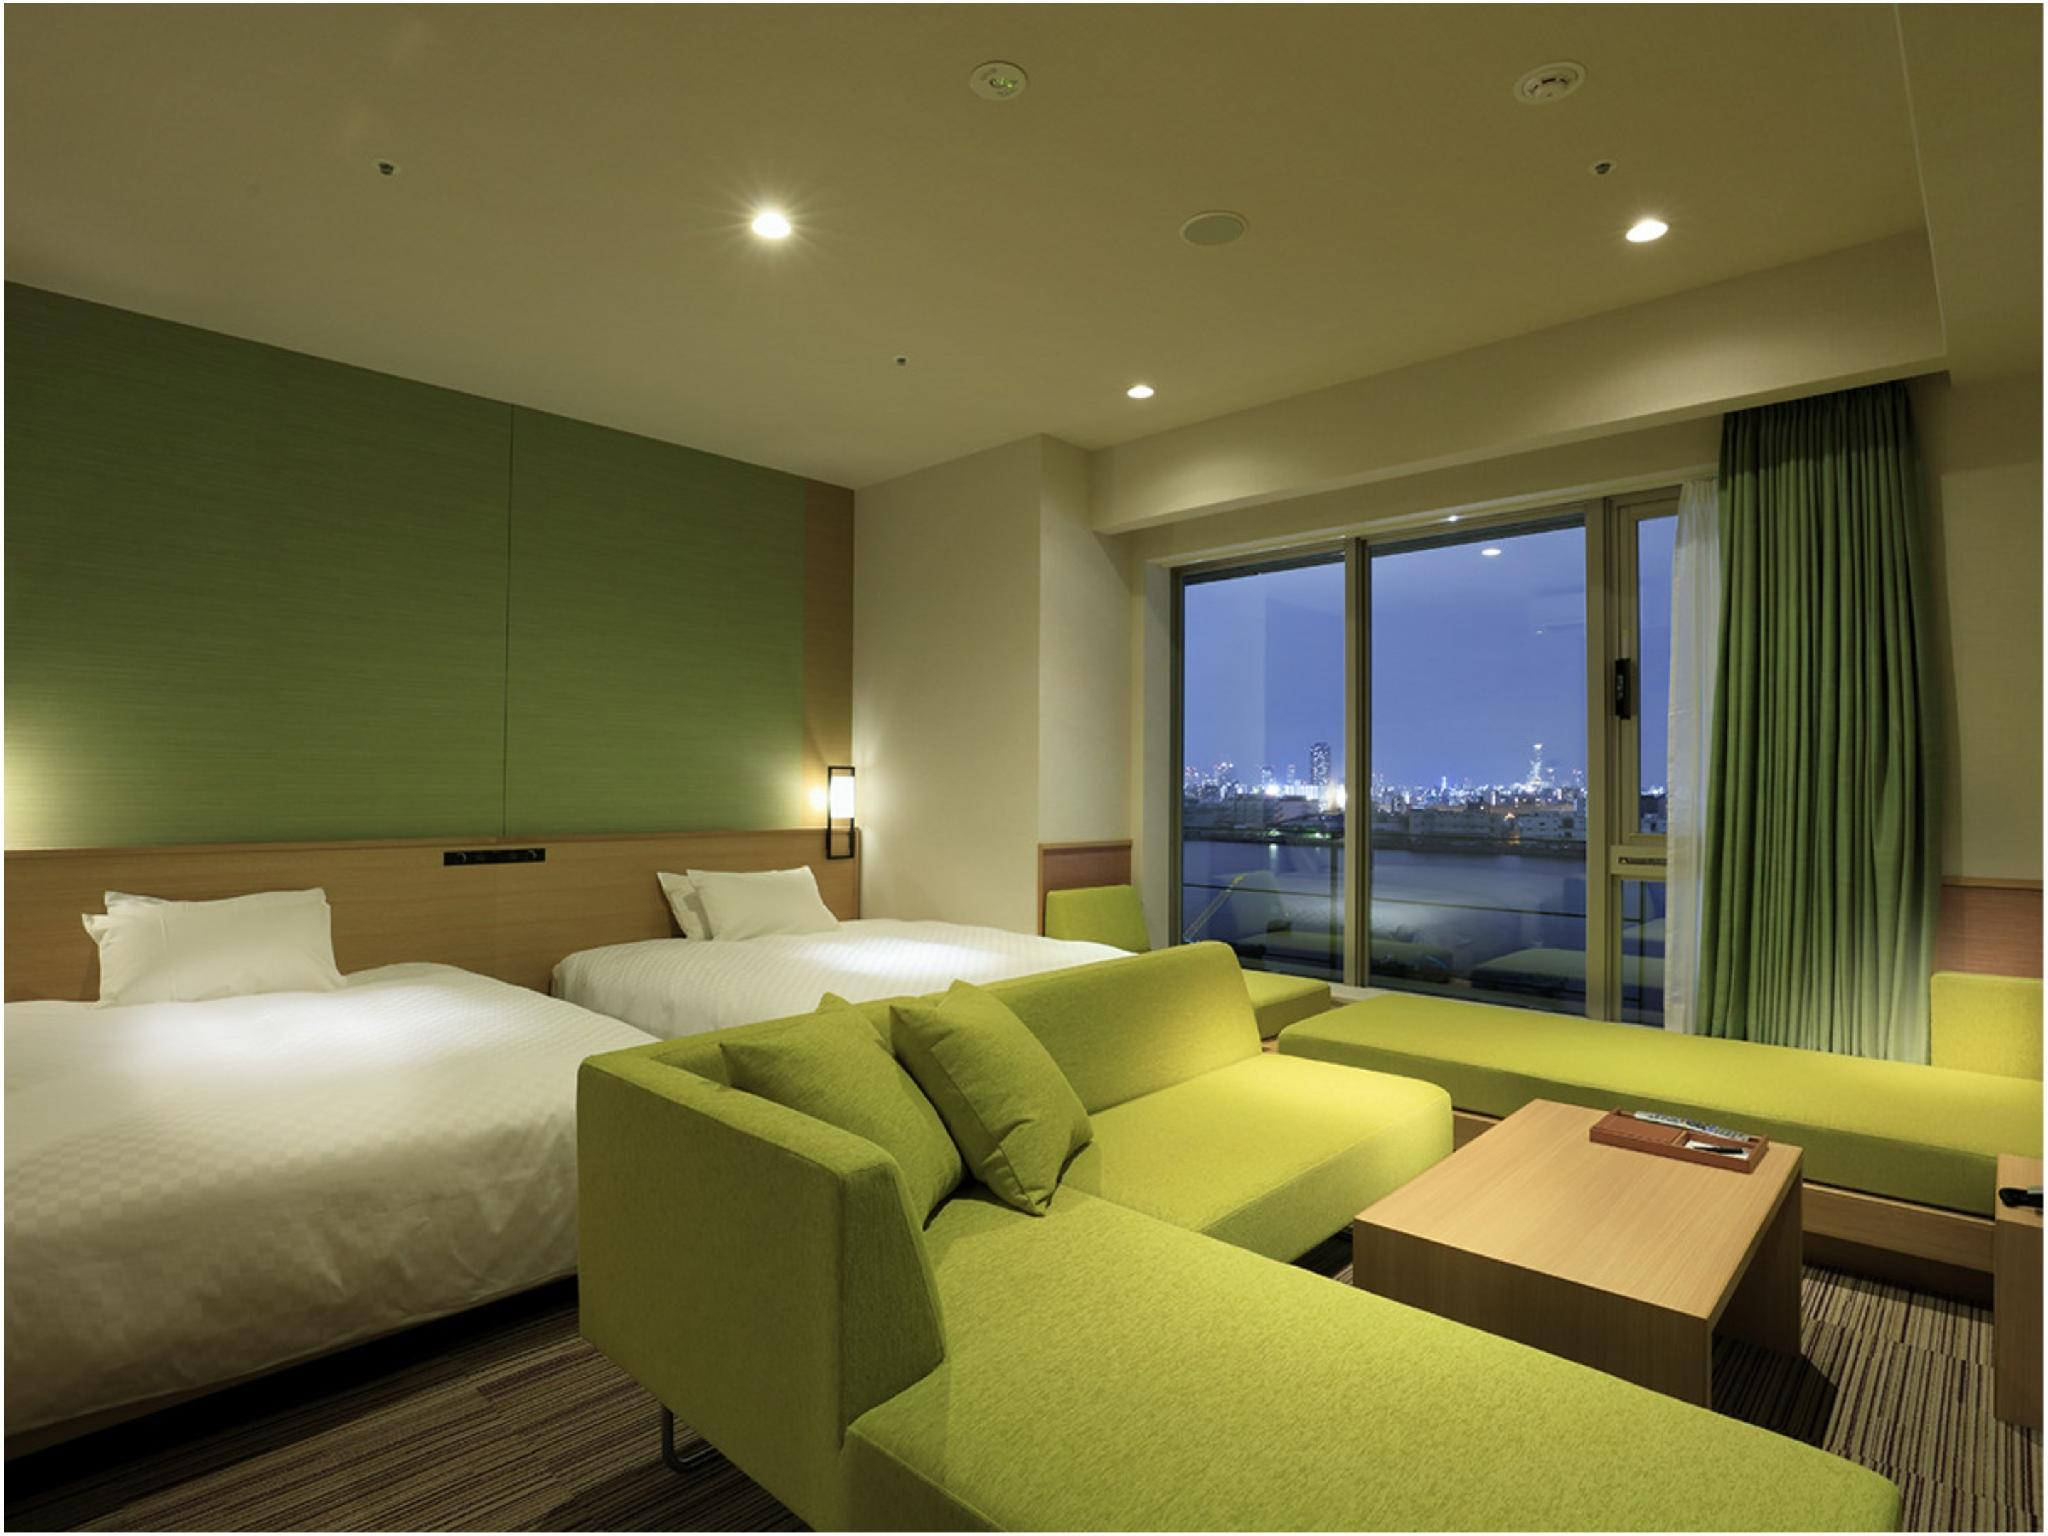 Singulari豪华双人双床房 (Singulari Deluxe Twin Room)